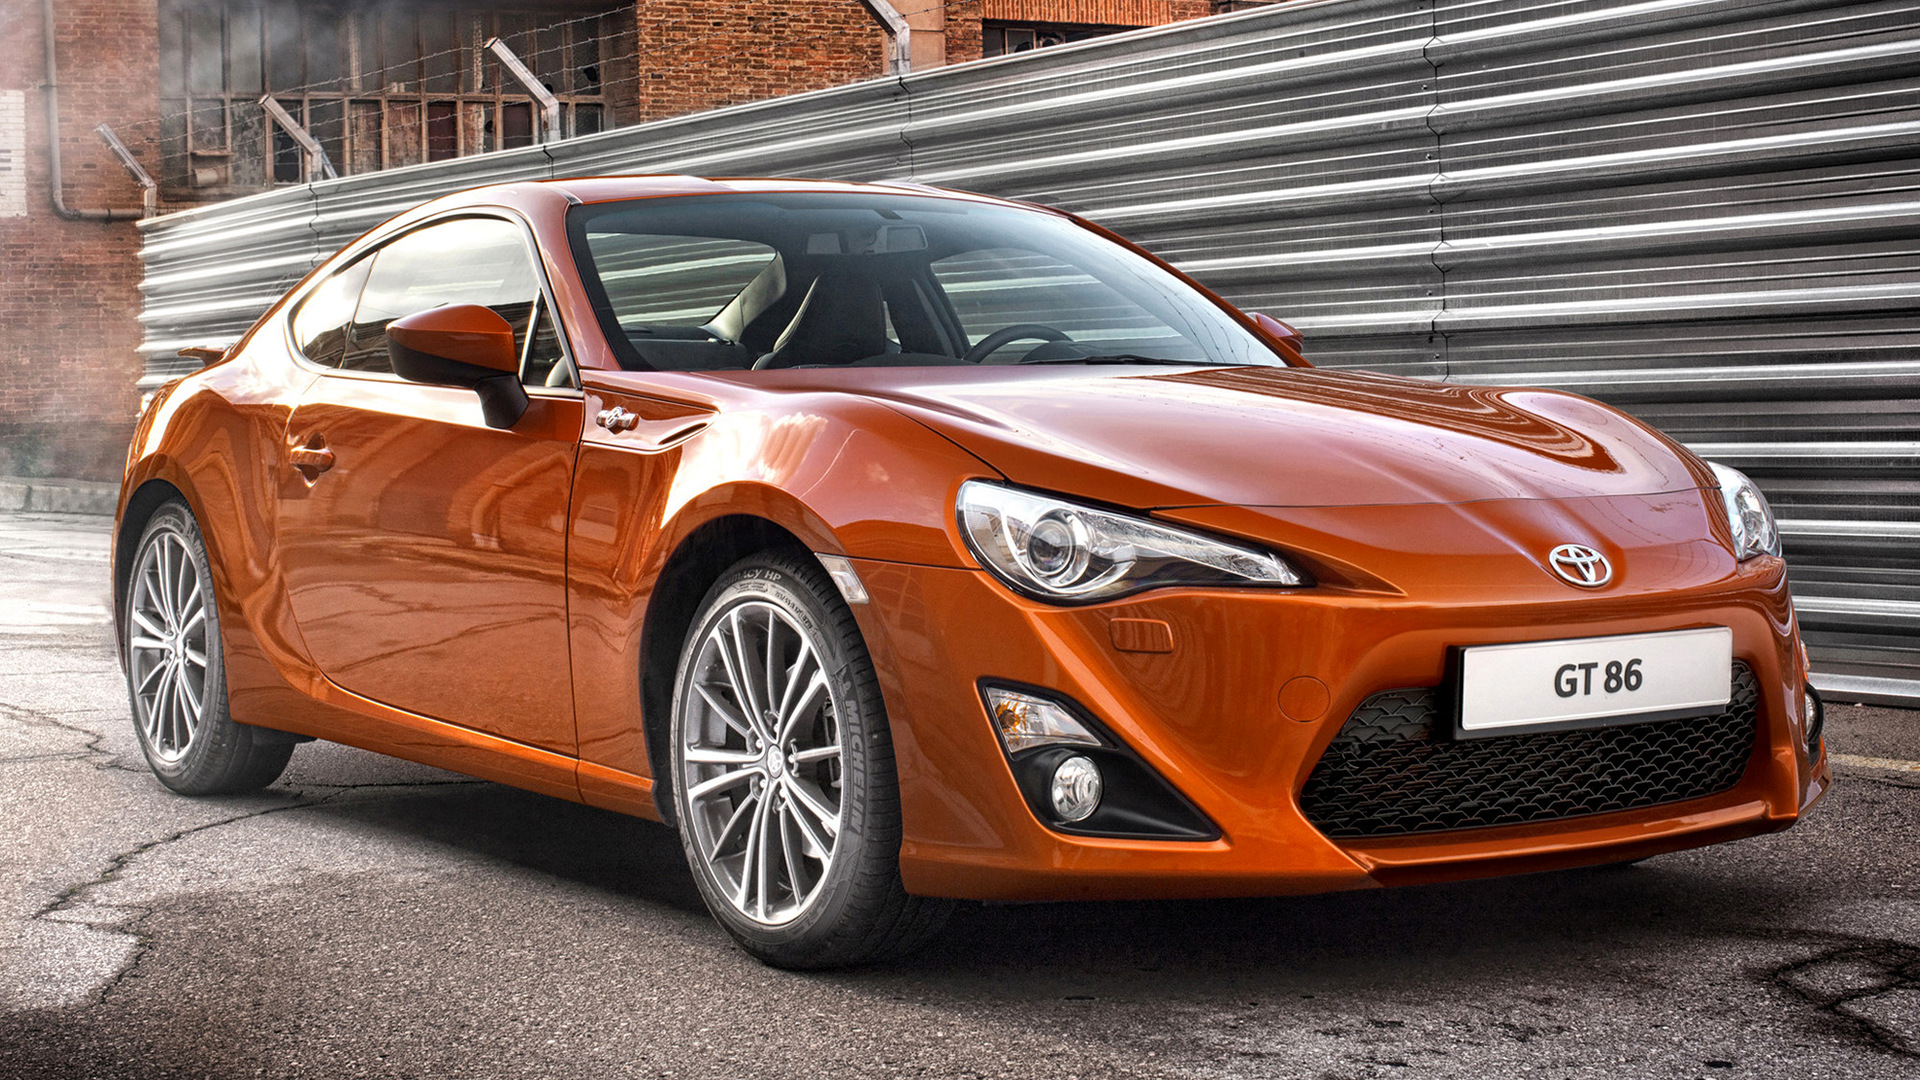 toyota gt 86 2012 wallpapers and hd images car pixel. Black Bedroom Furniture Sets. Home Design Ideas